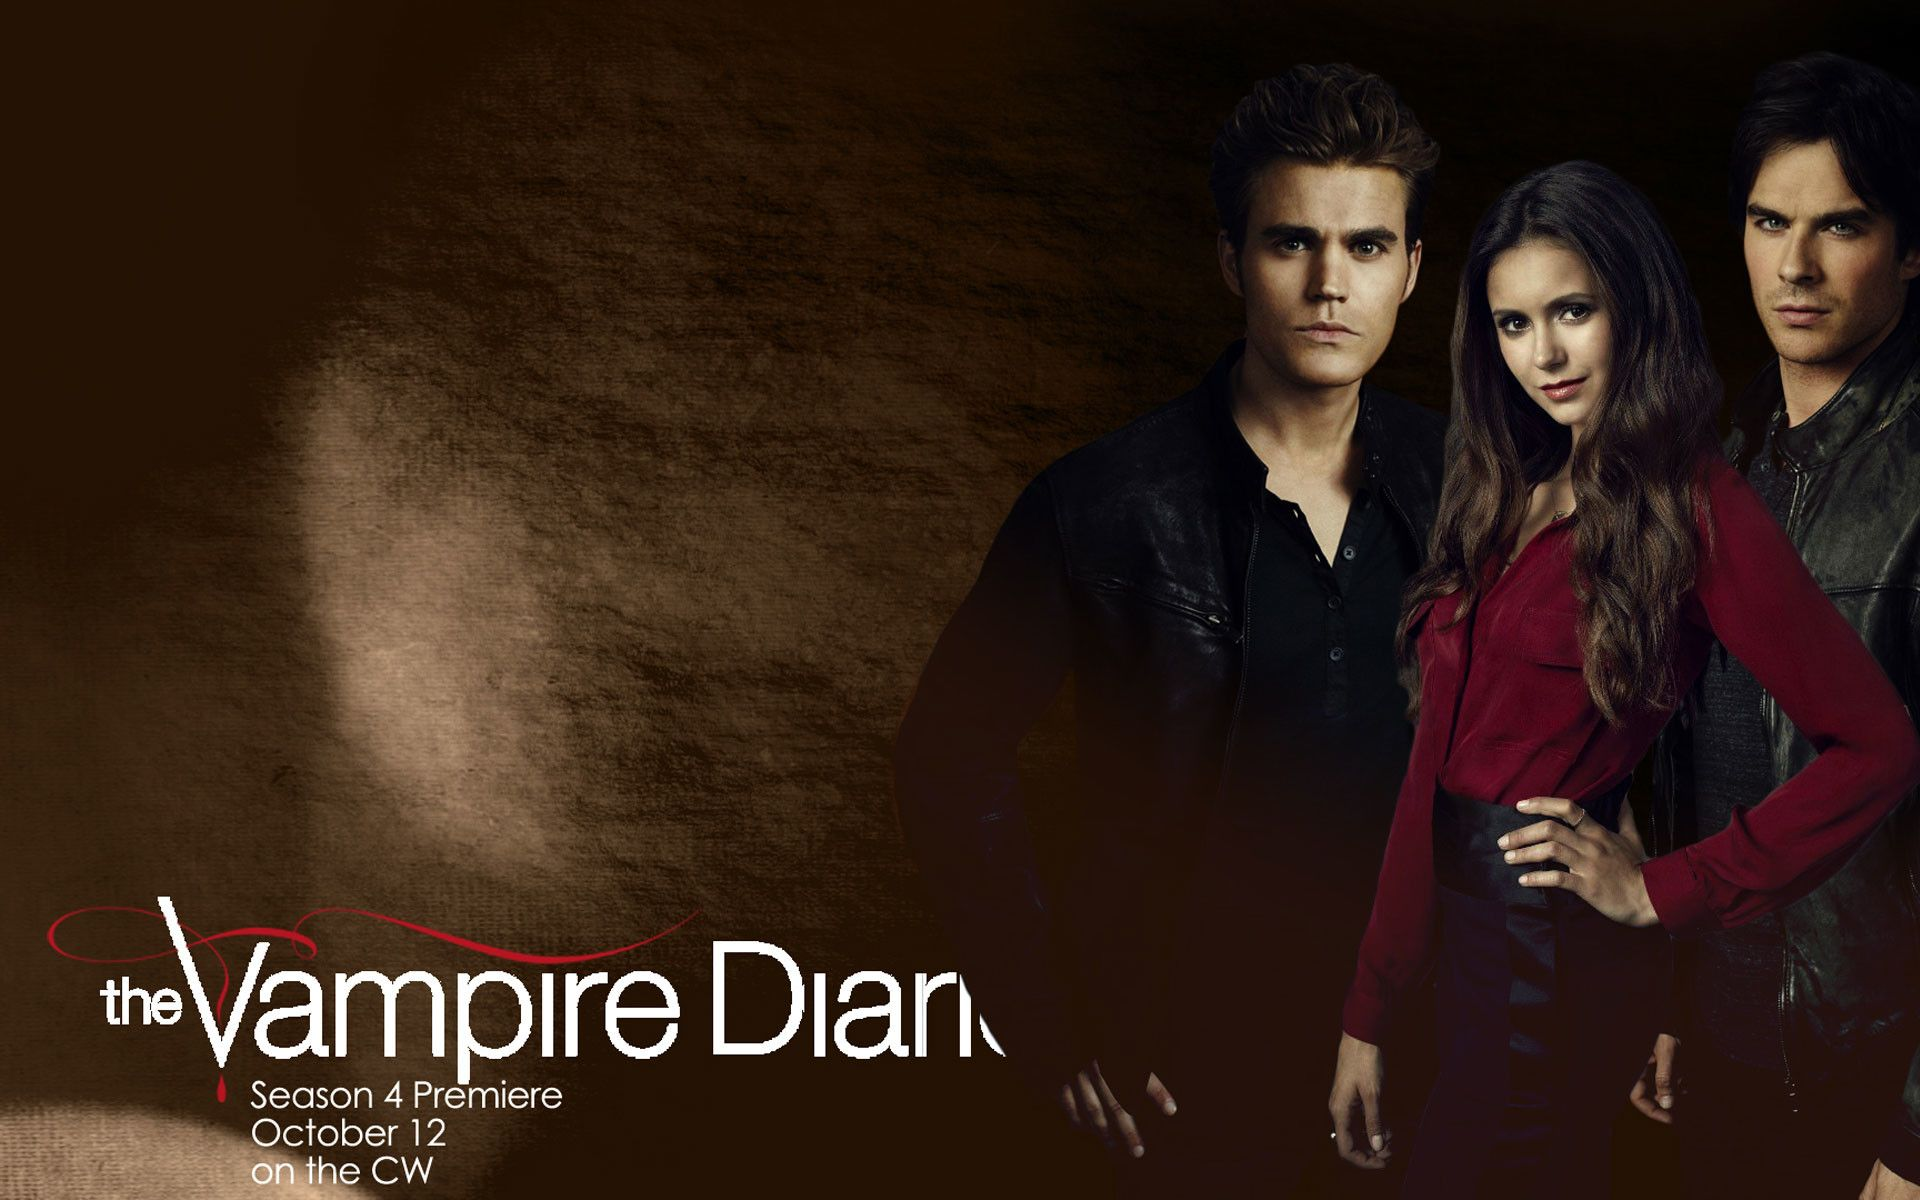 Vampire Diaries Wallpapers 79+ - yese69.com - 4K Wallpapers World